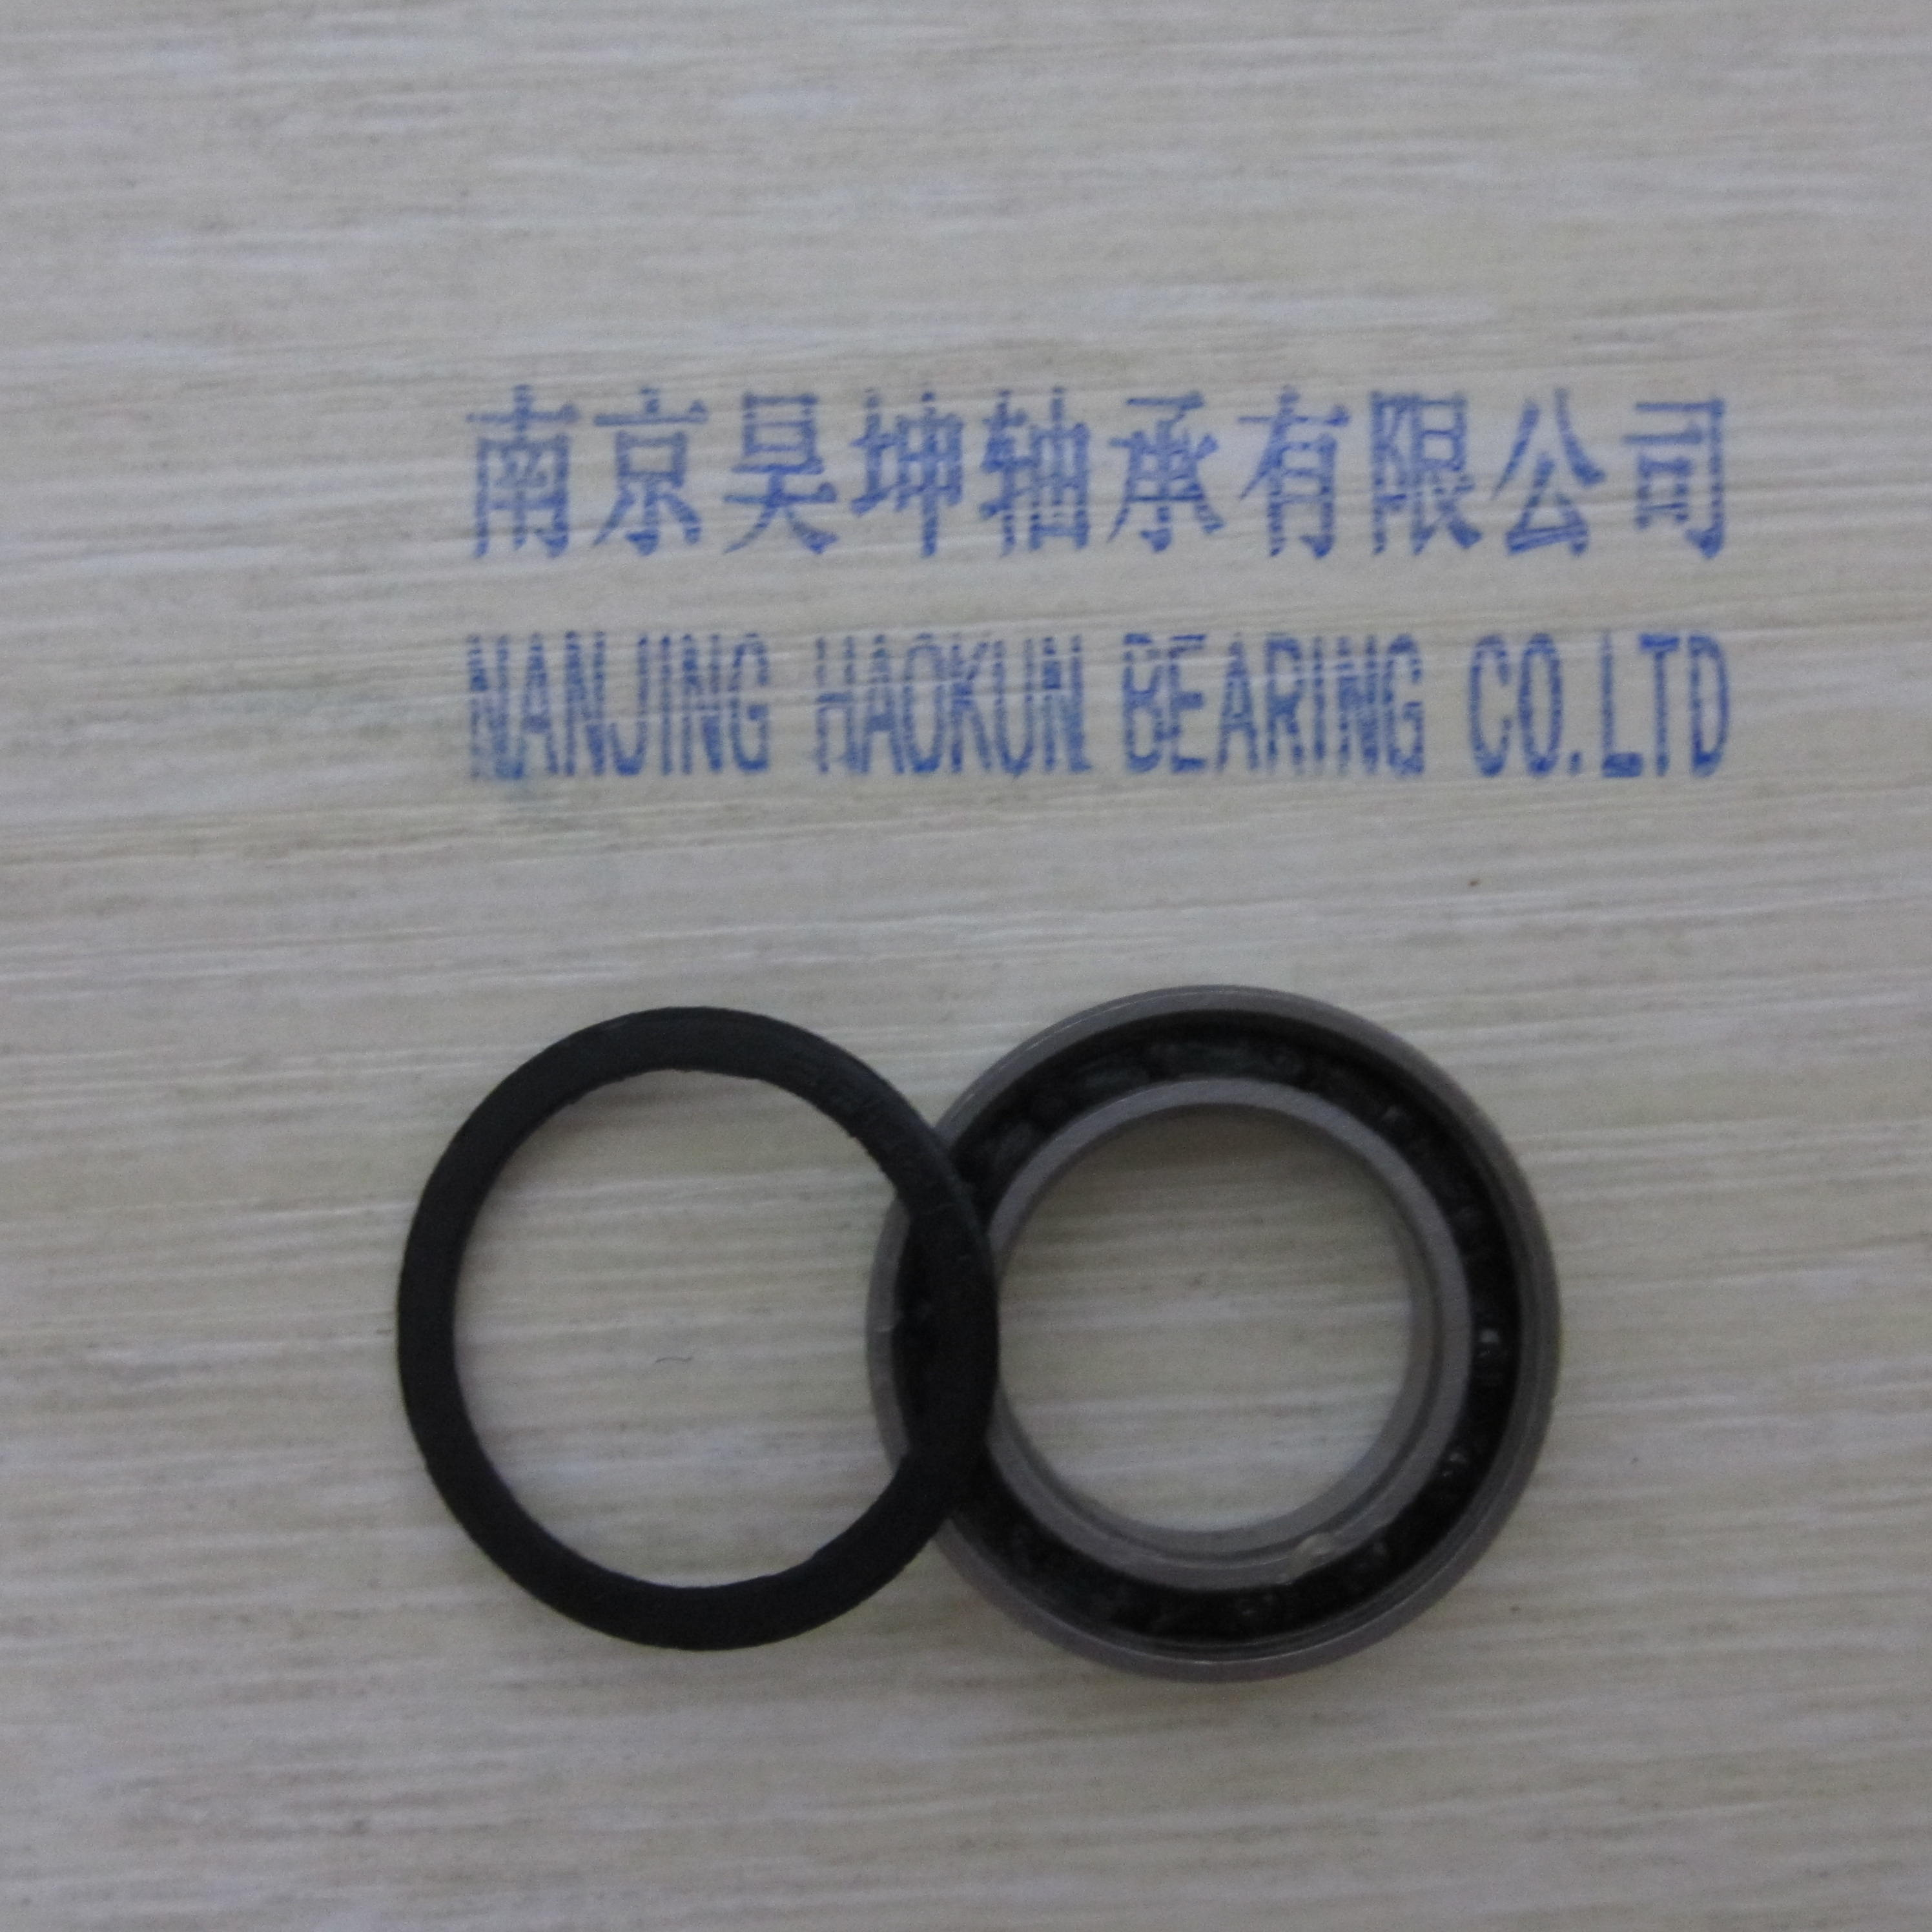 6002 s6002-2rs CB stainless steel Si3N4 hybrid ceramic ball bearing sc6002 15*32*9mm (si3n4 balls+ss rings) a s 98 415203 101 6002 nero